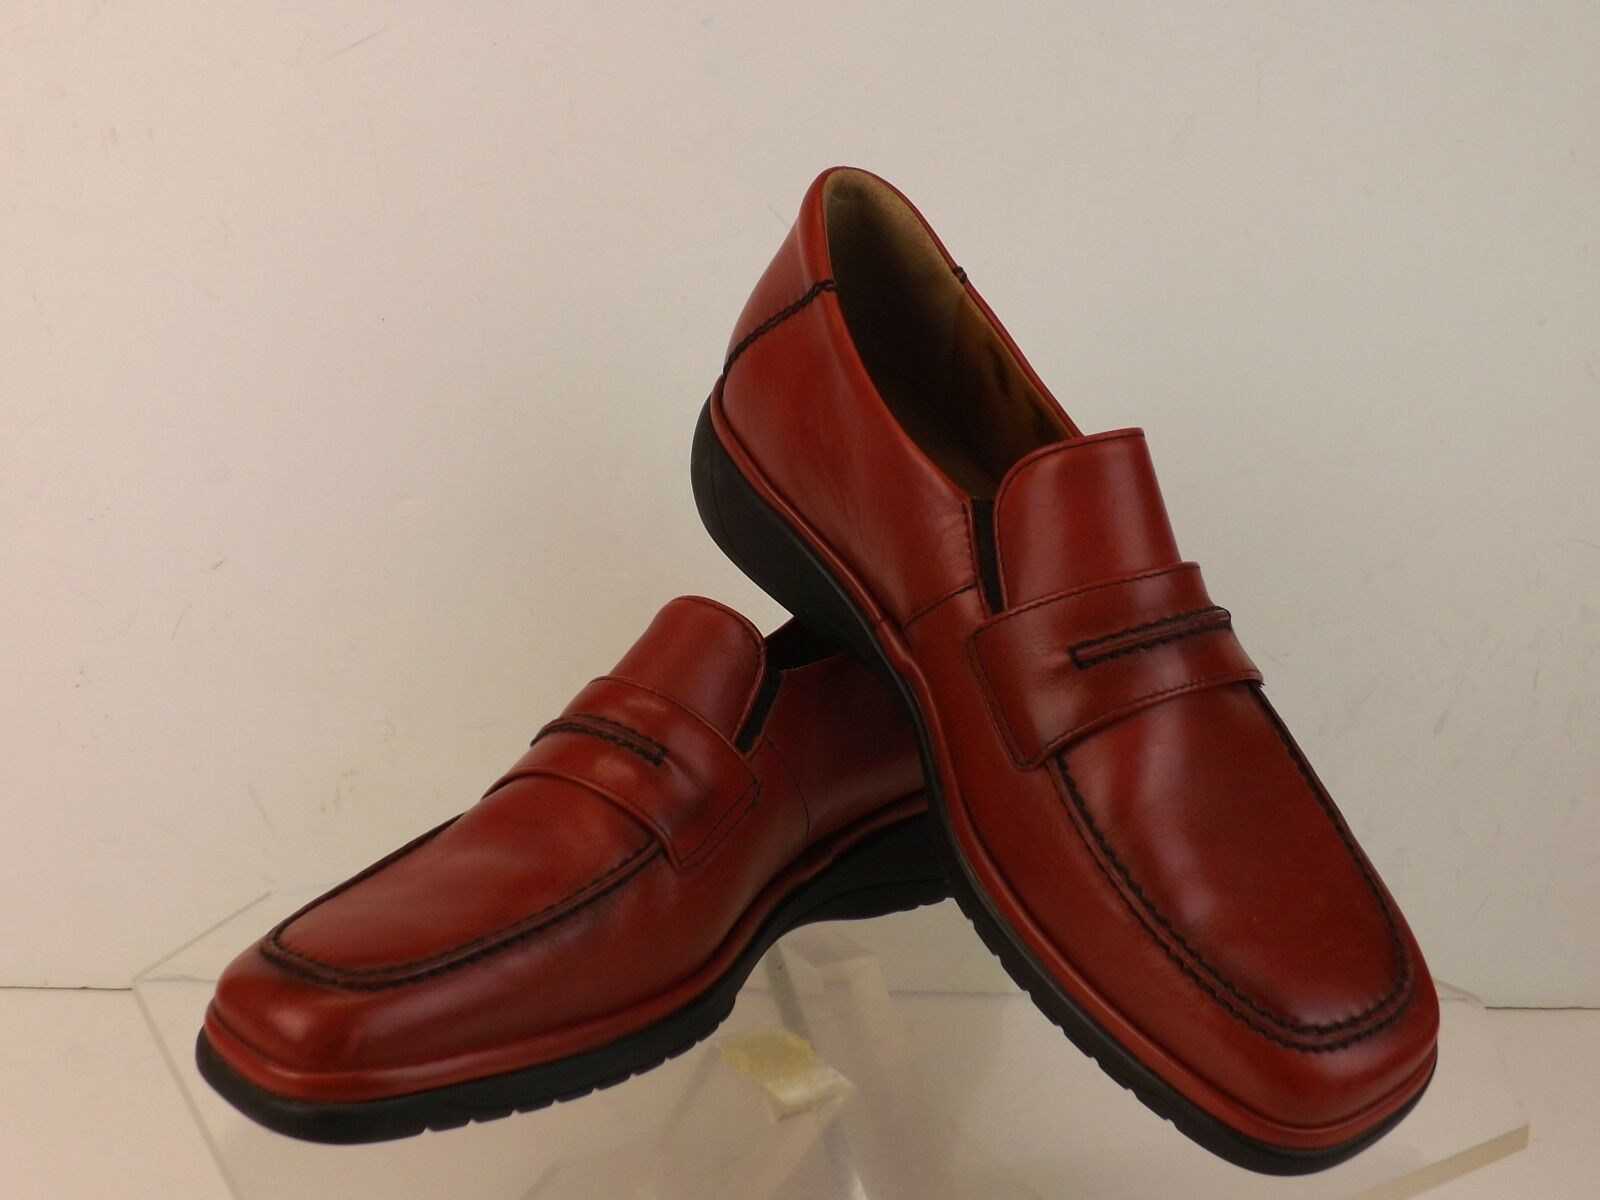 NWB MEPHISTO RED LEATHER CONTRAST STITCHED JANET LOAFERS LOAFERS LOAFERS PORTUGAL 9  250 19e437